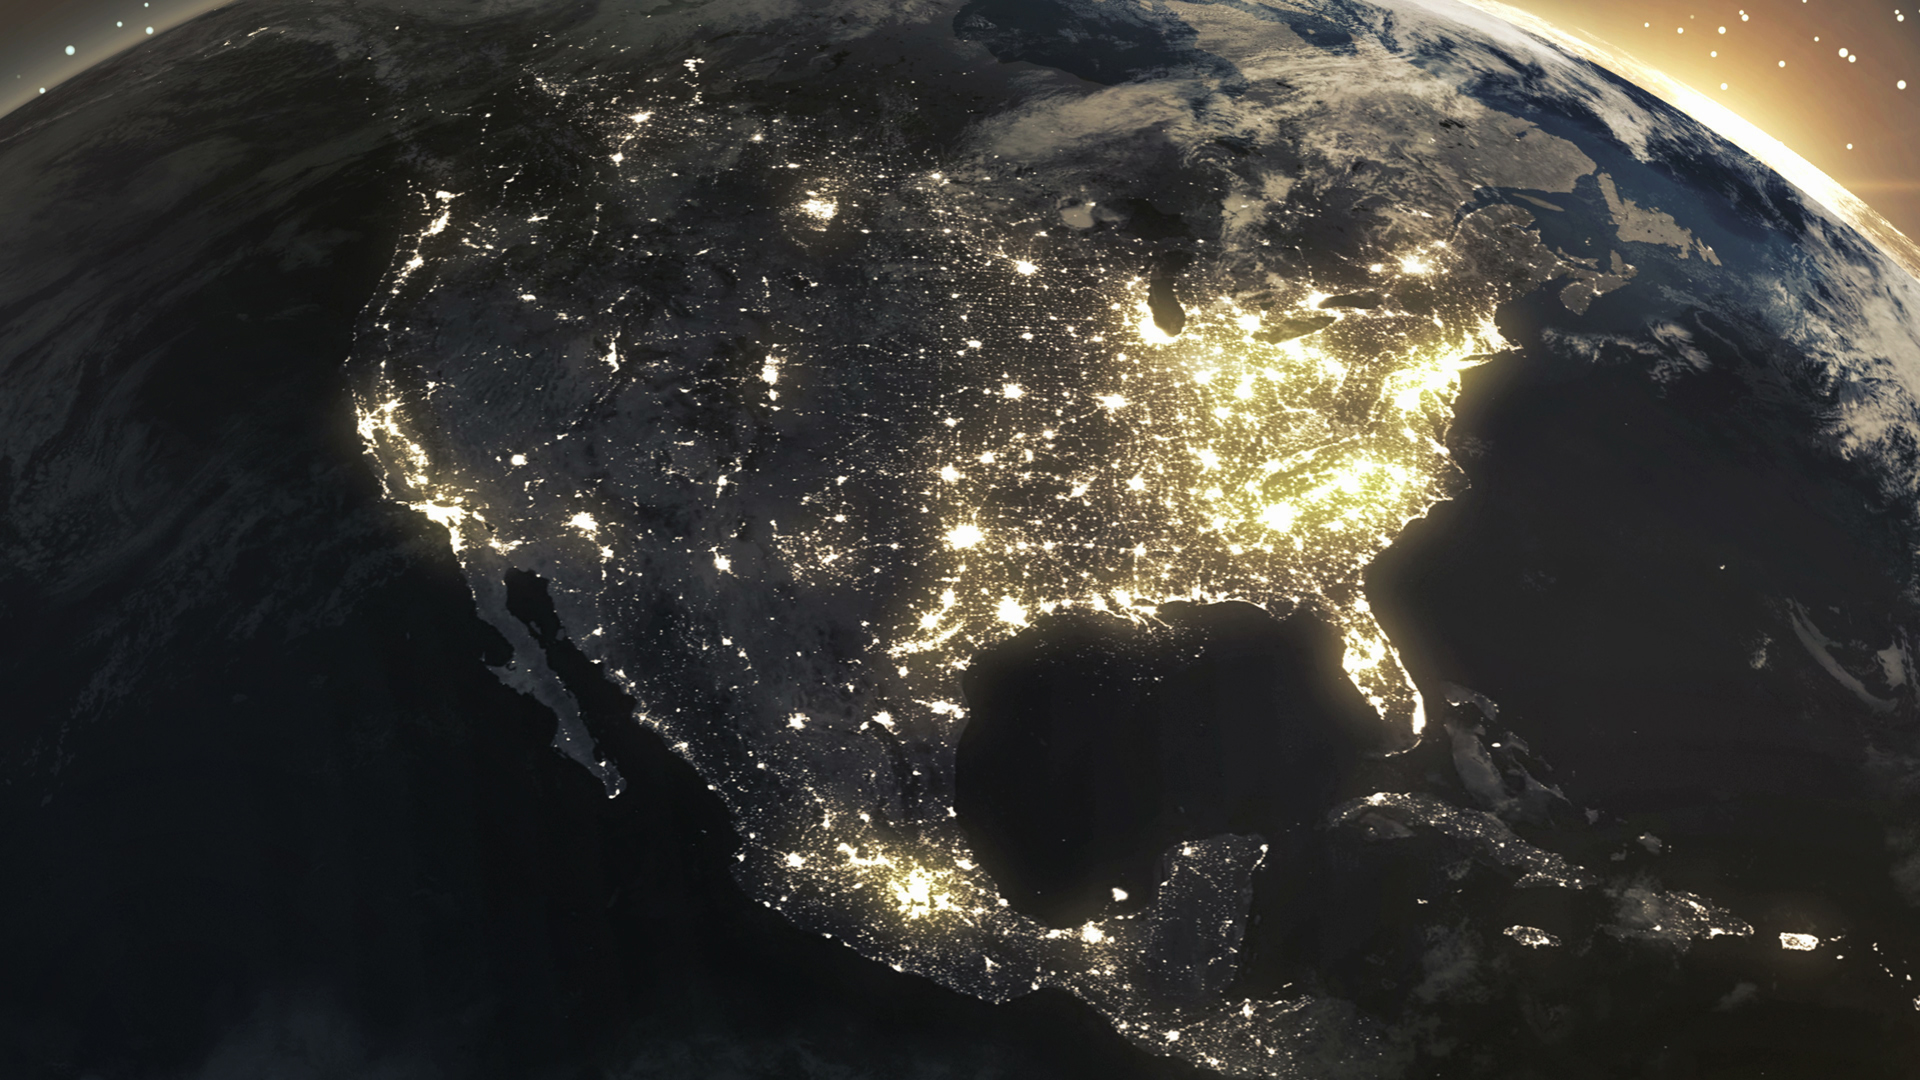 United States at night taken from satellite